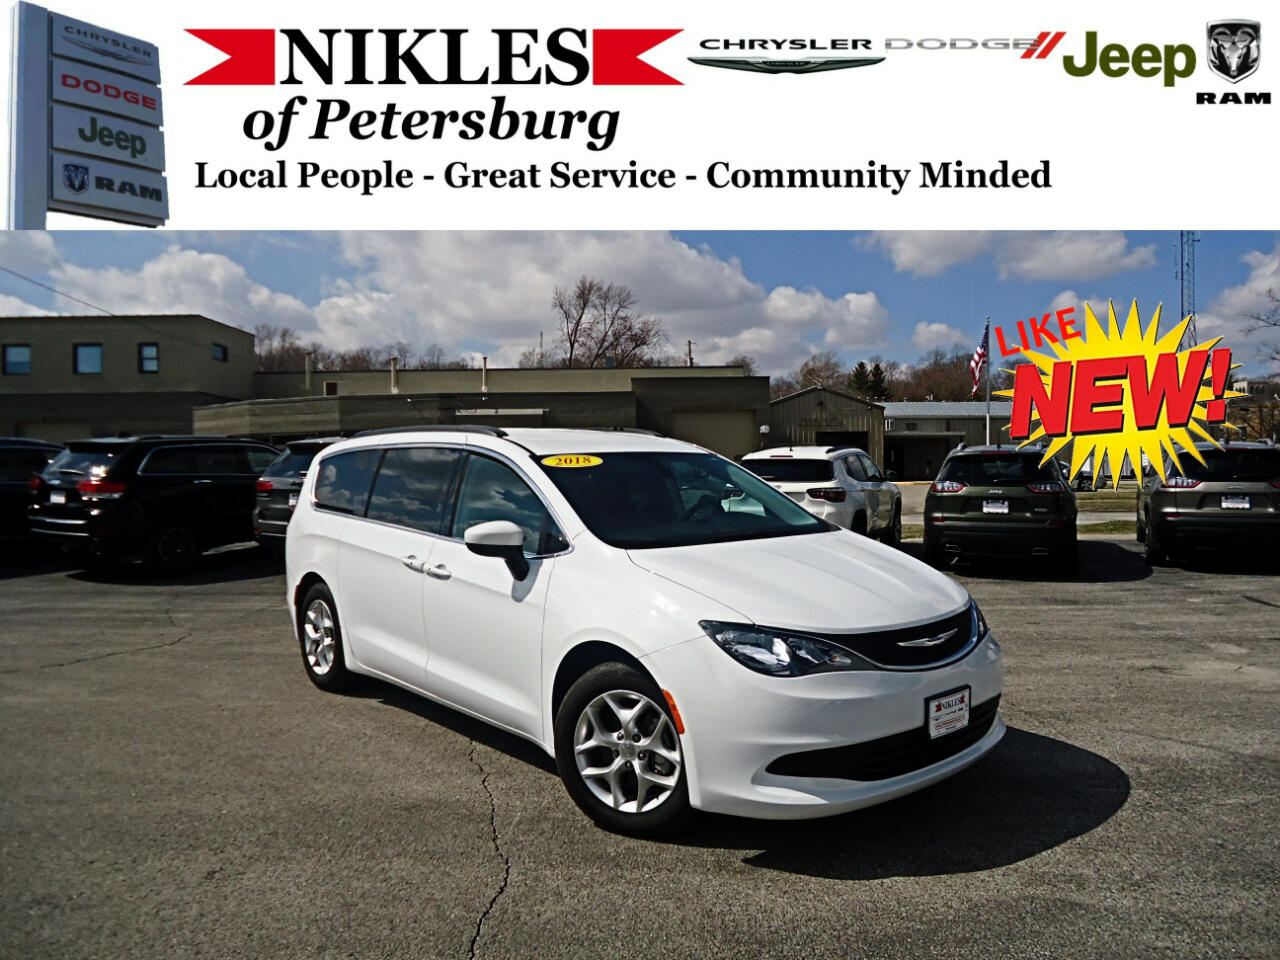 2018 Chrysler Pacifica 4dr Wgn Touring FWD